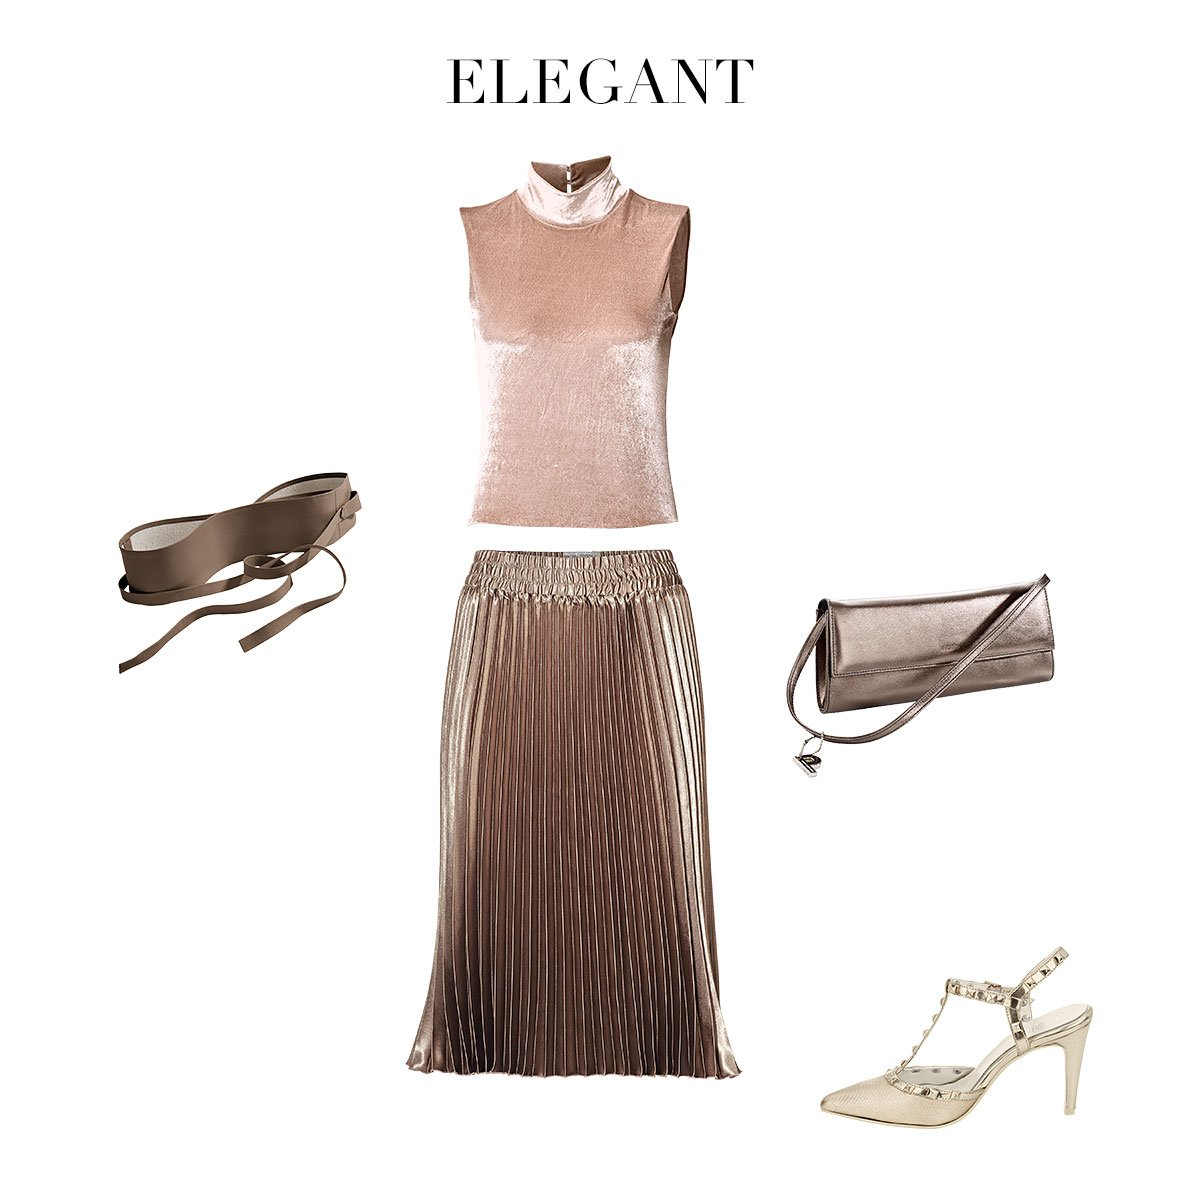 Plissee-Rock_elegant_outfit_august_kollage_4